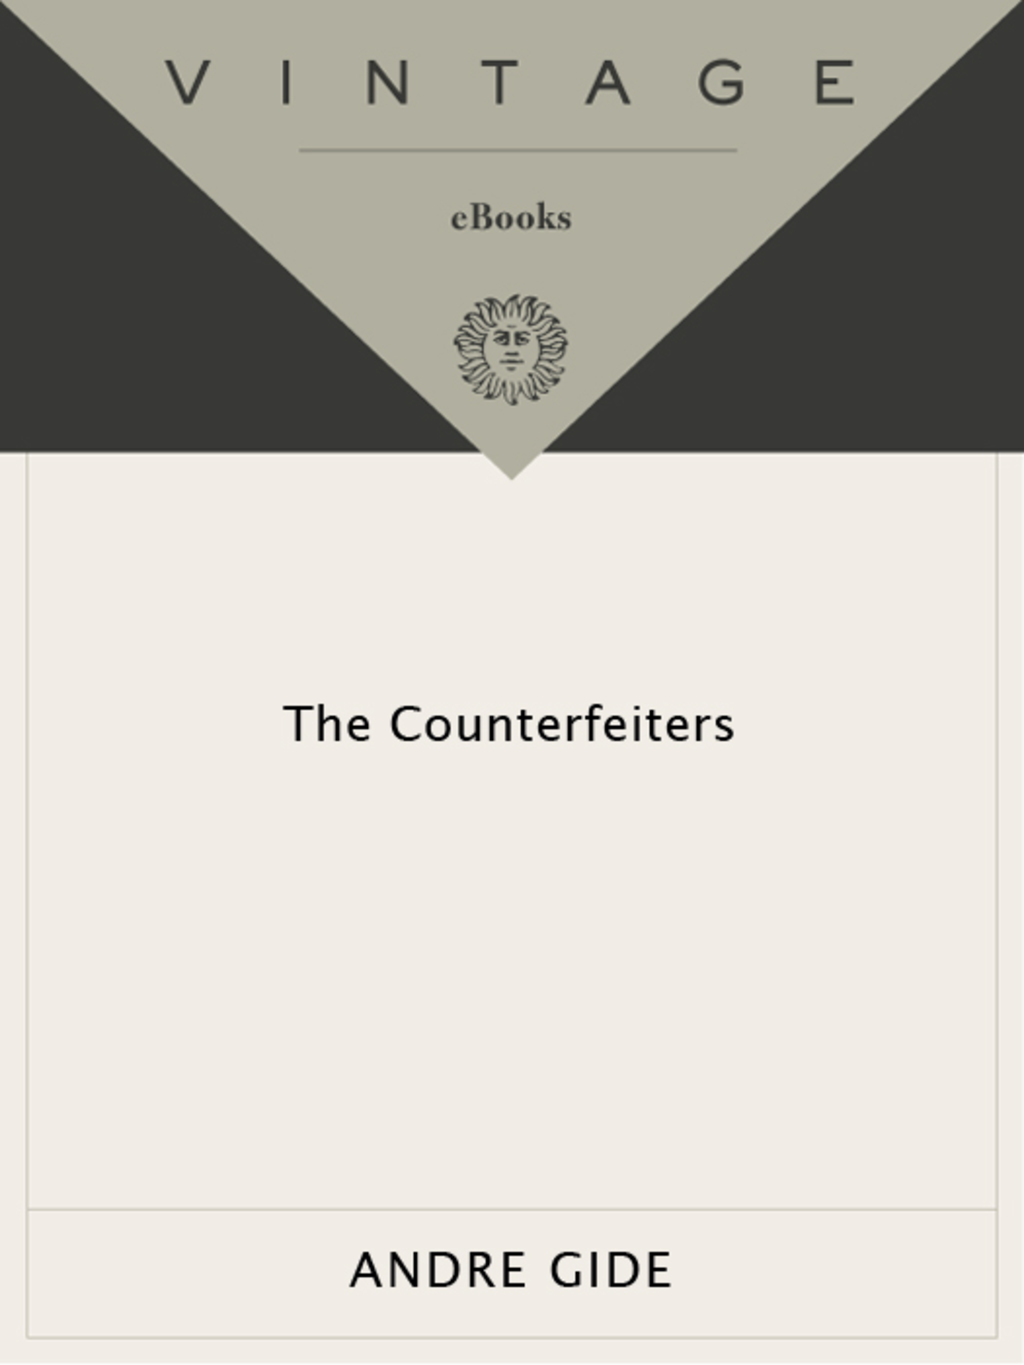 The Counterfeiters (ebook) eBooks